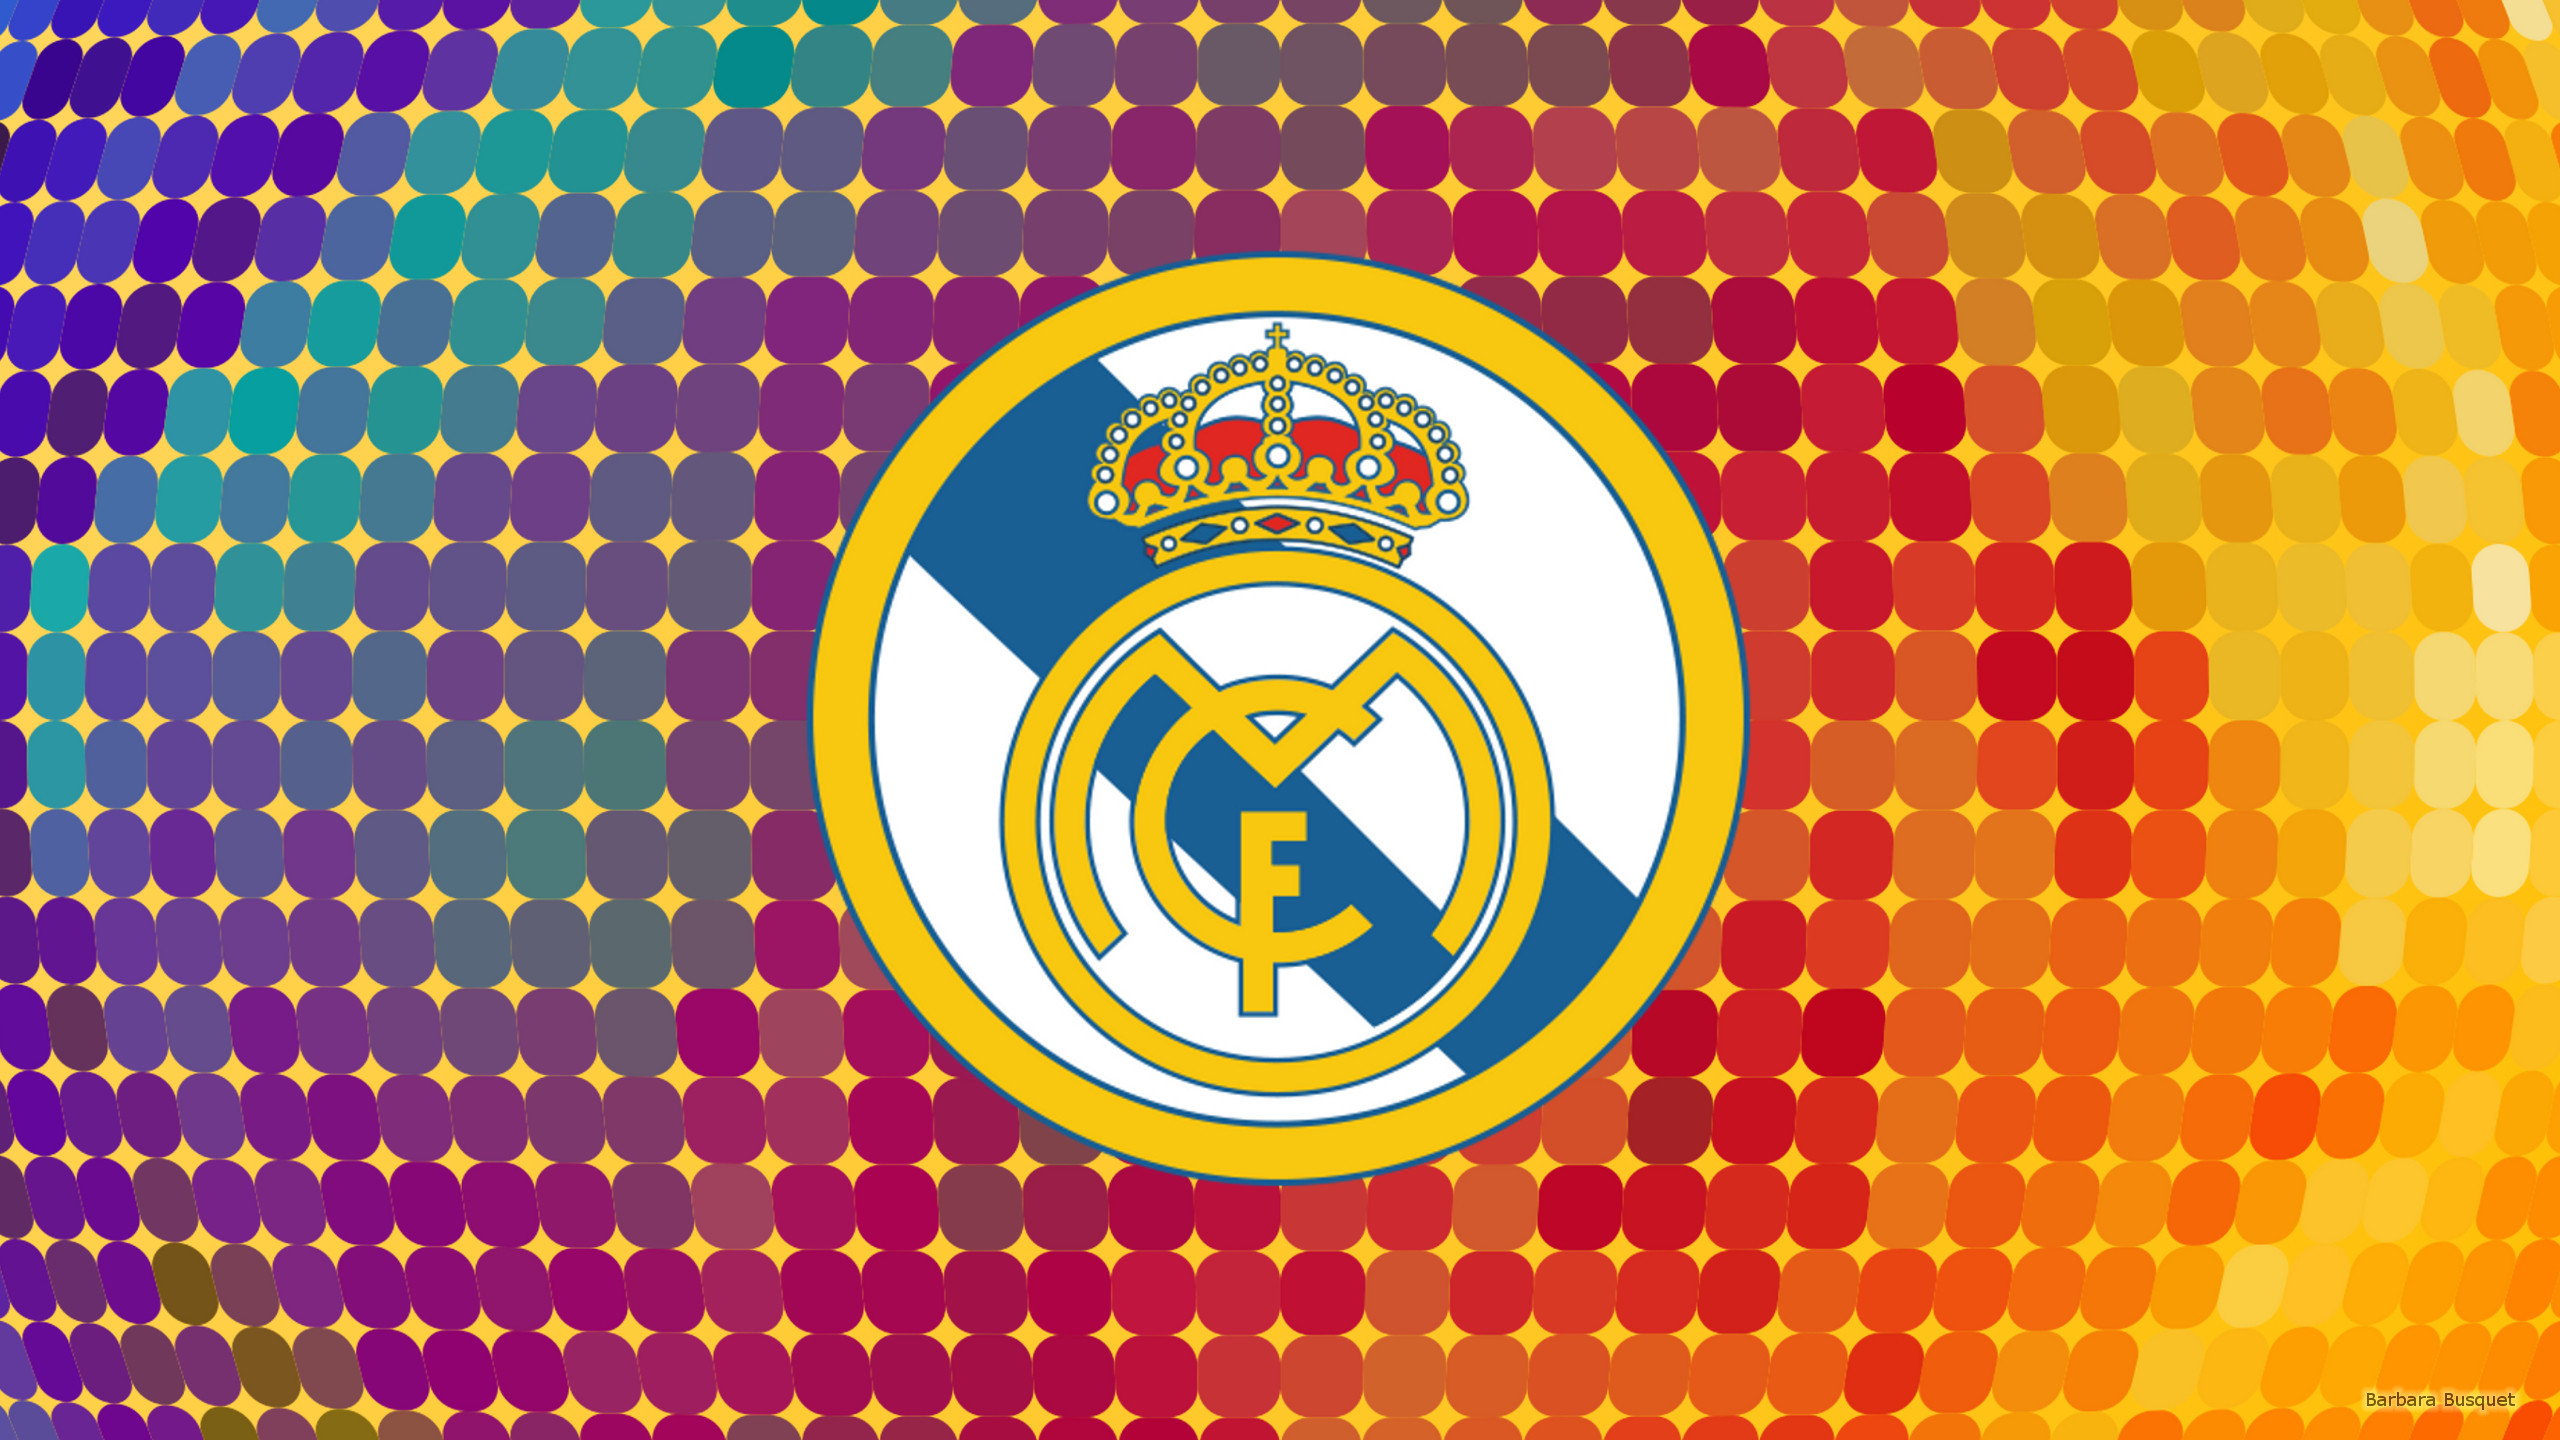 Res: 2560x1440, Colorful Real Madrid logo wallpaper